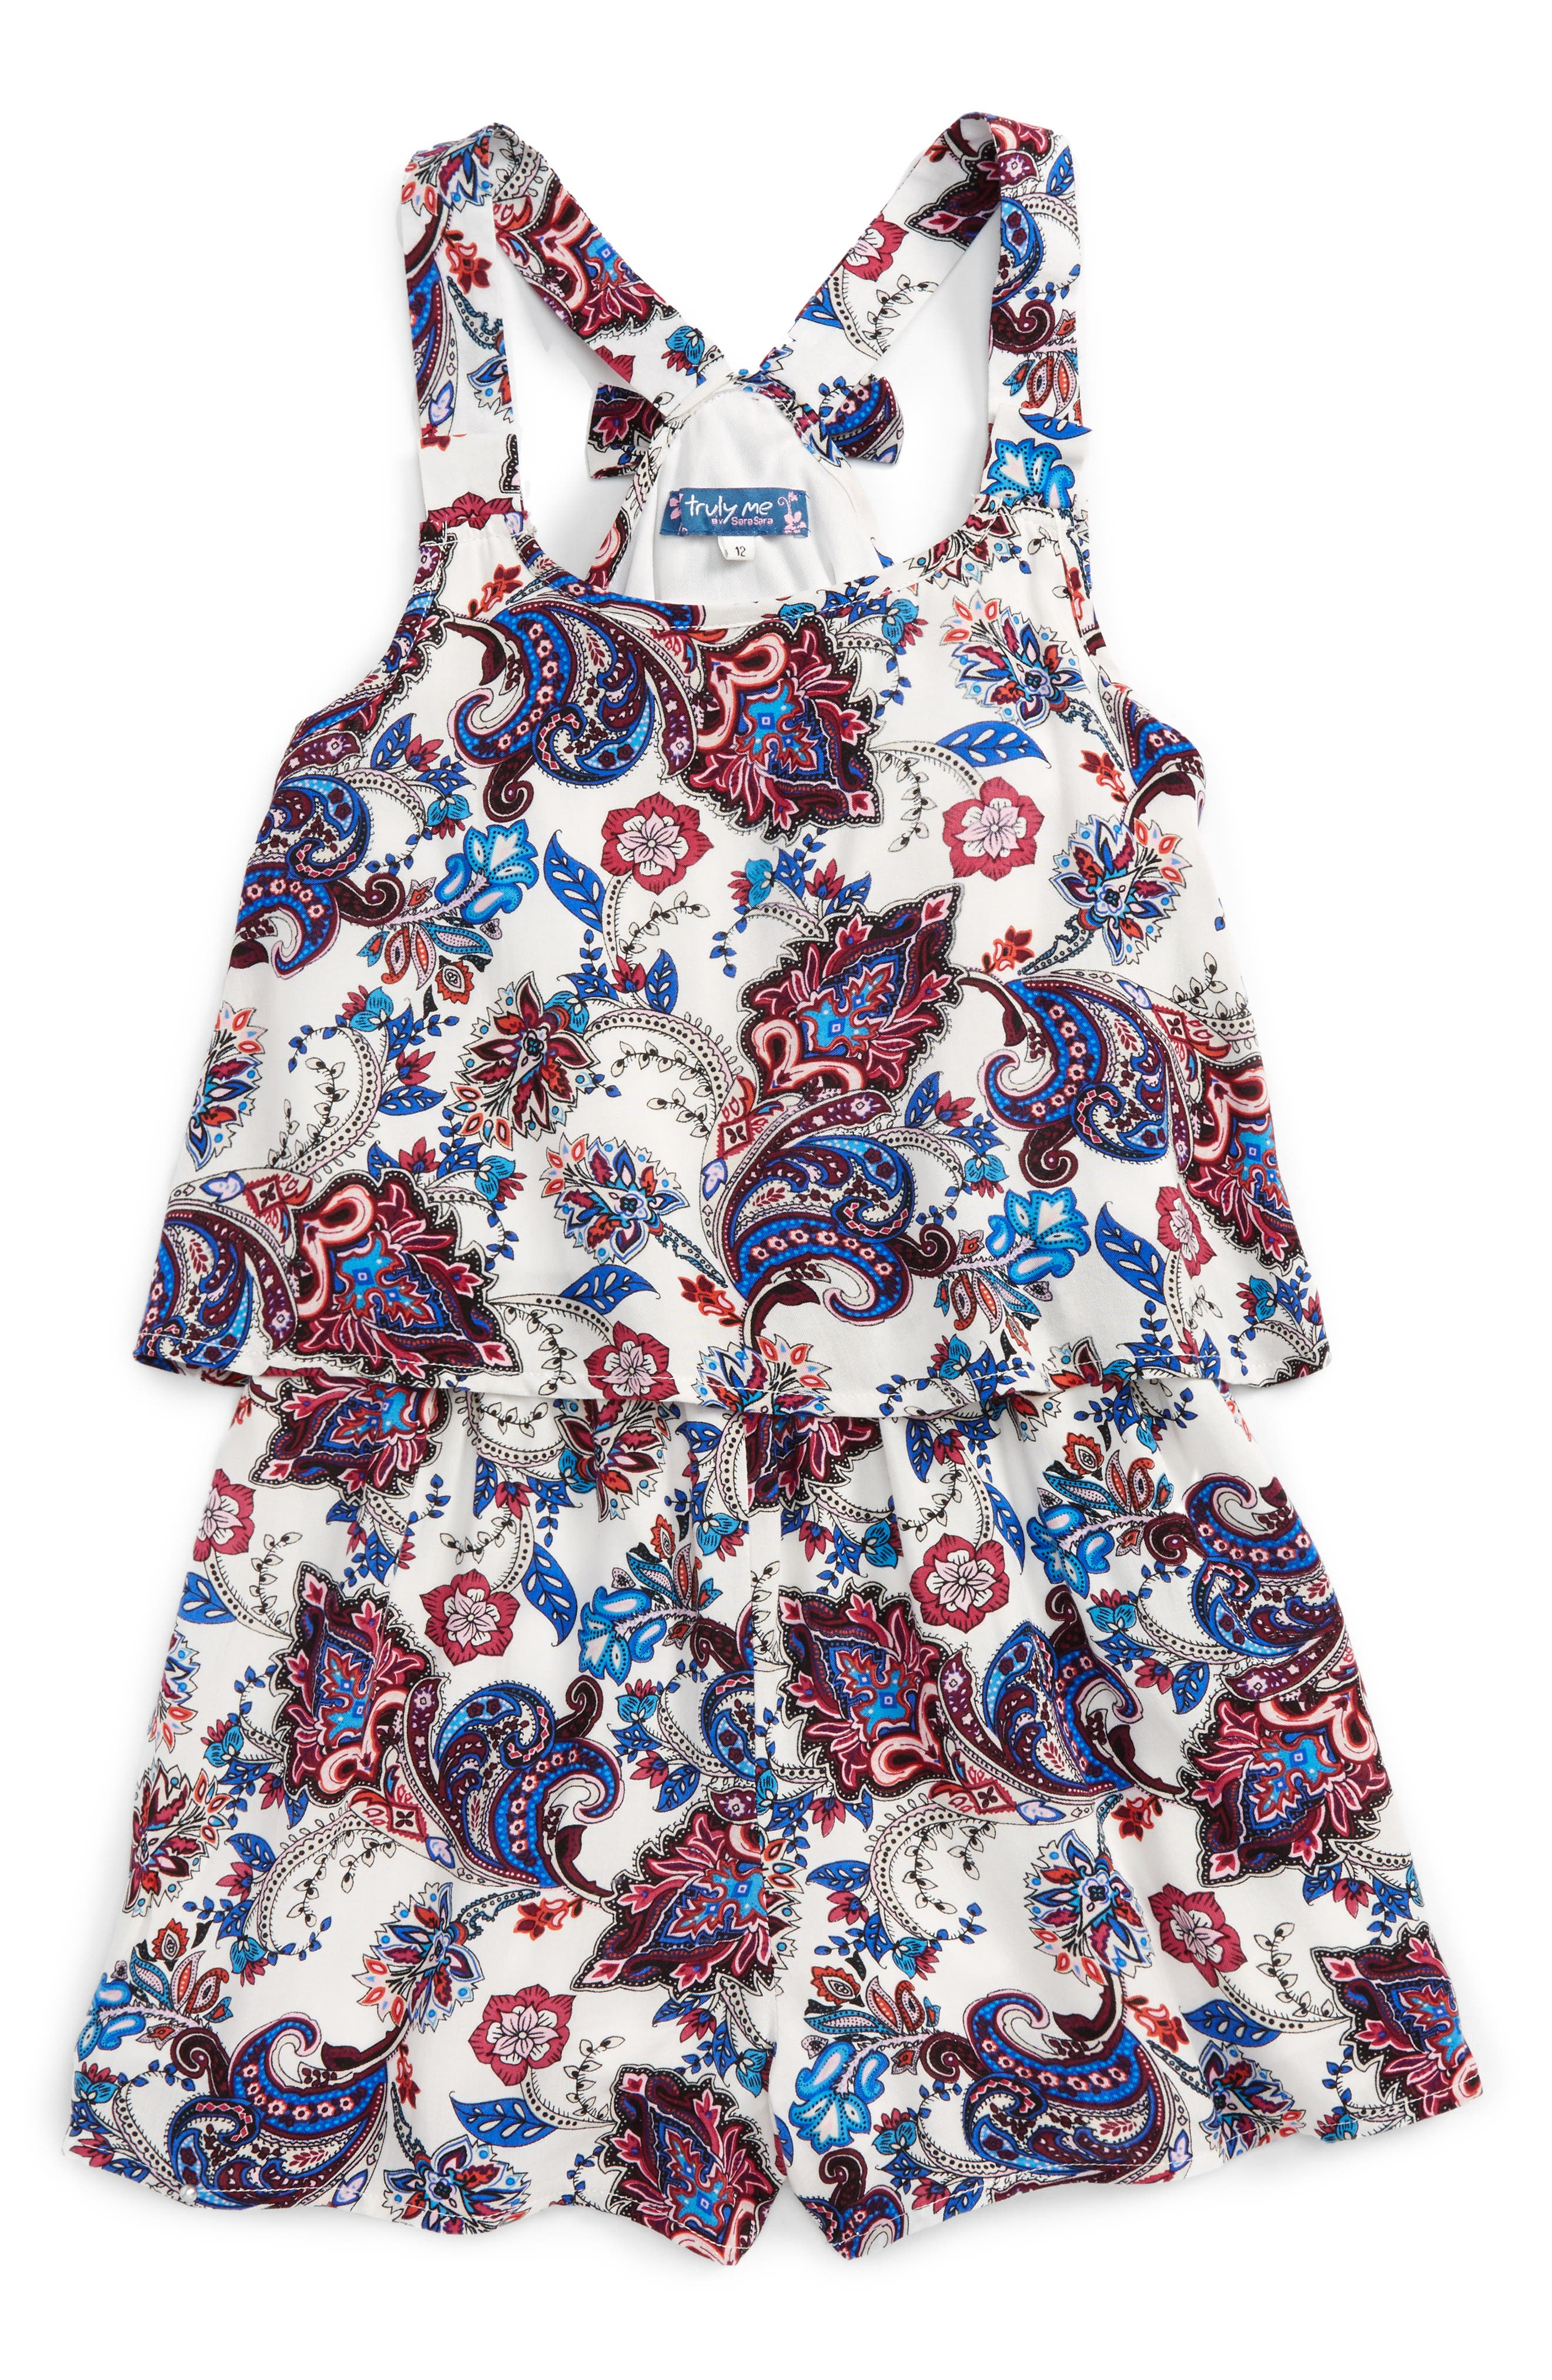 Alternate Image 1 Selected - Truly Me Paisley Print Popover Romper (Big Girls)